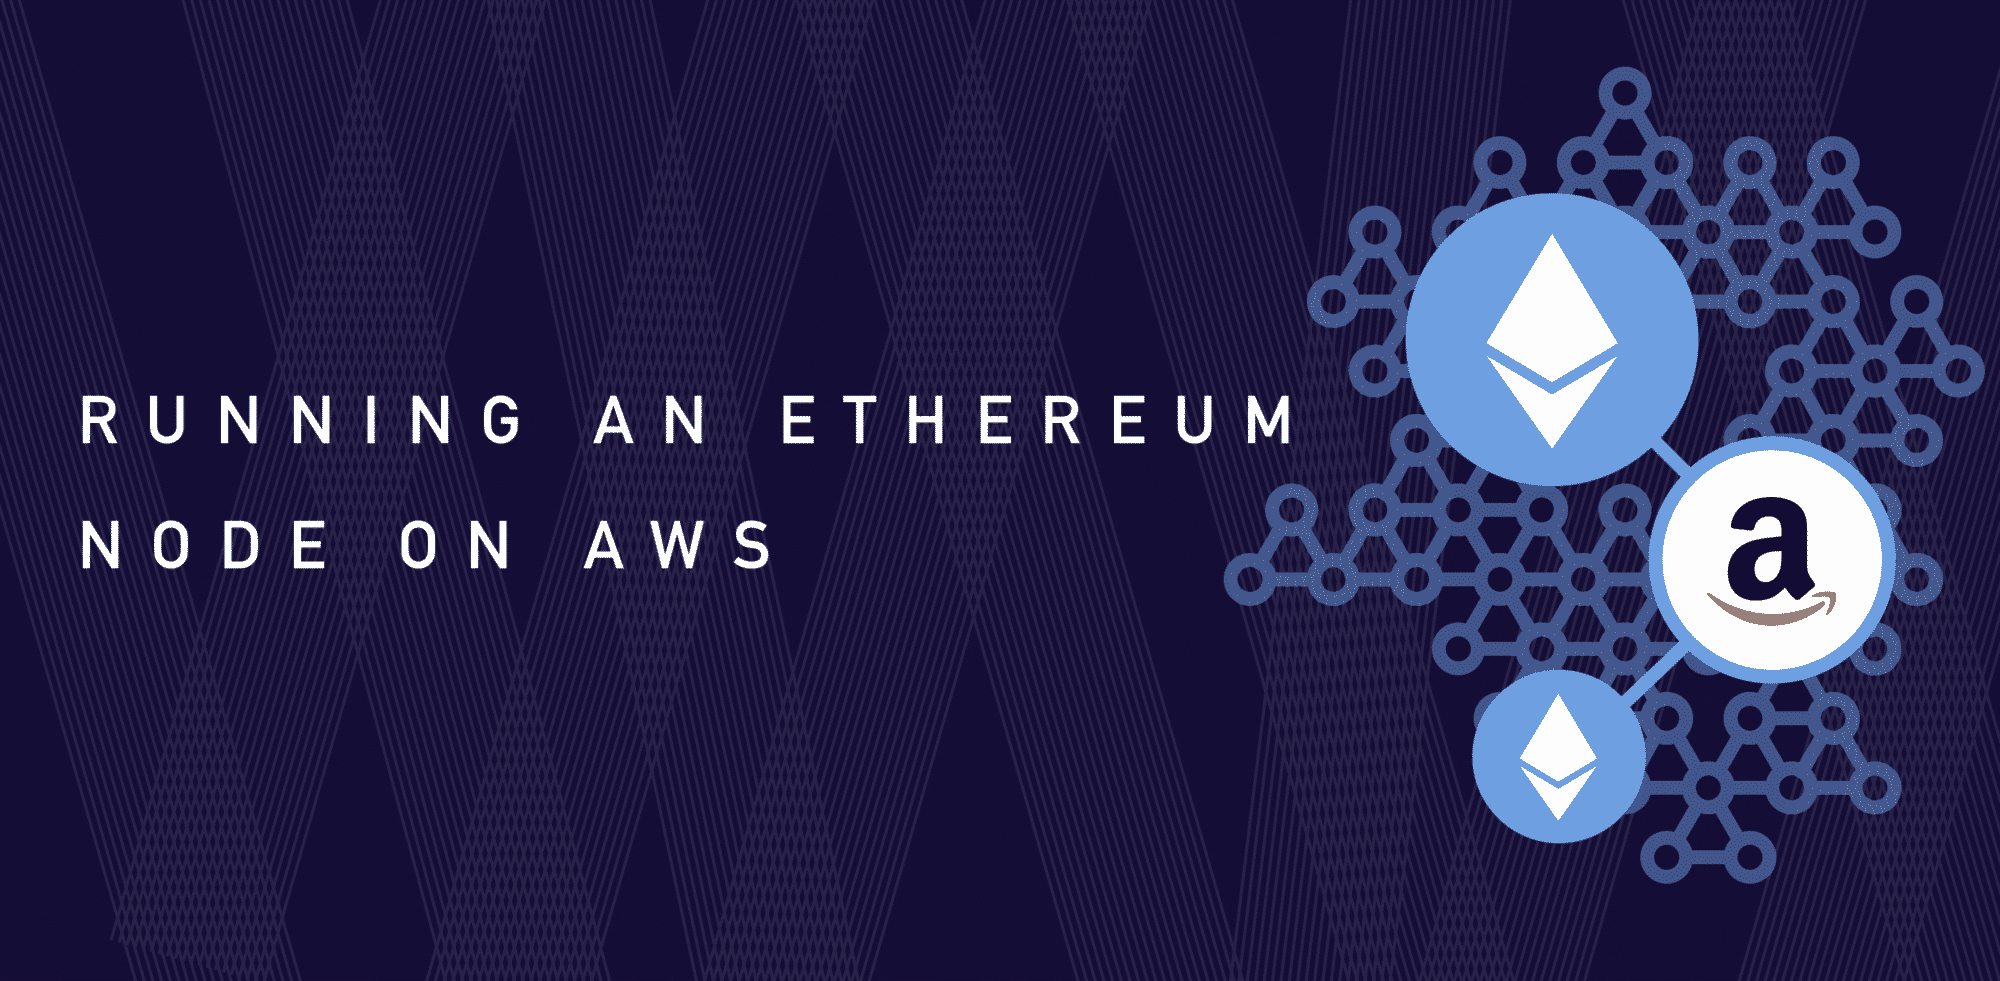 Ethereum Nodes Run on Amazon Web Services